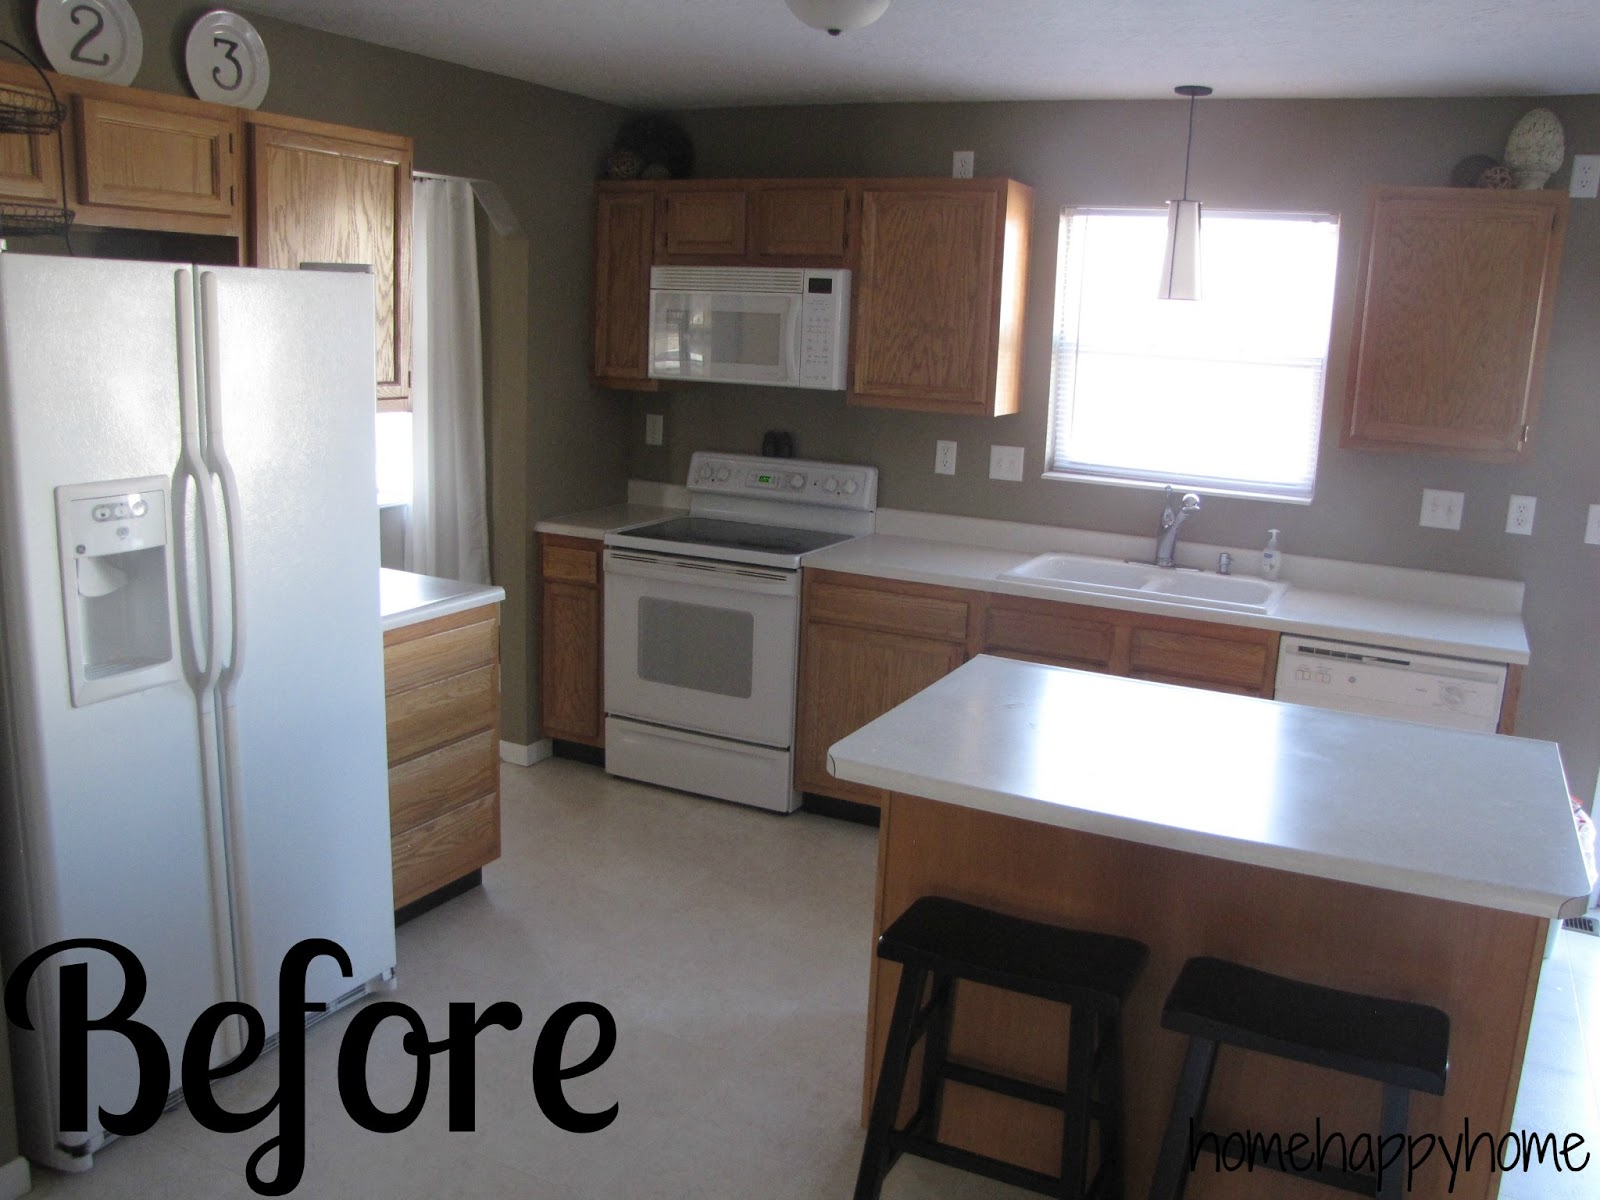 Http Homehappyhome Blogspot Com 2013 02 Kitchen Remodel Progress Html